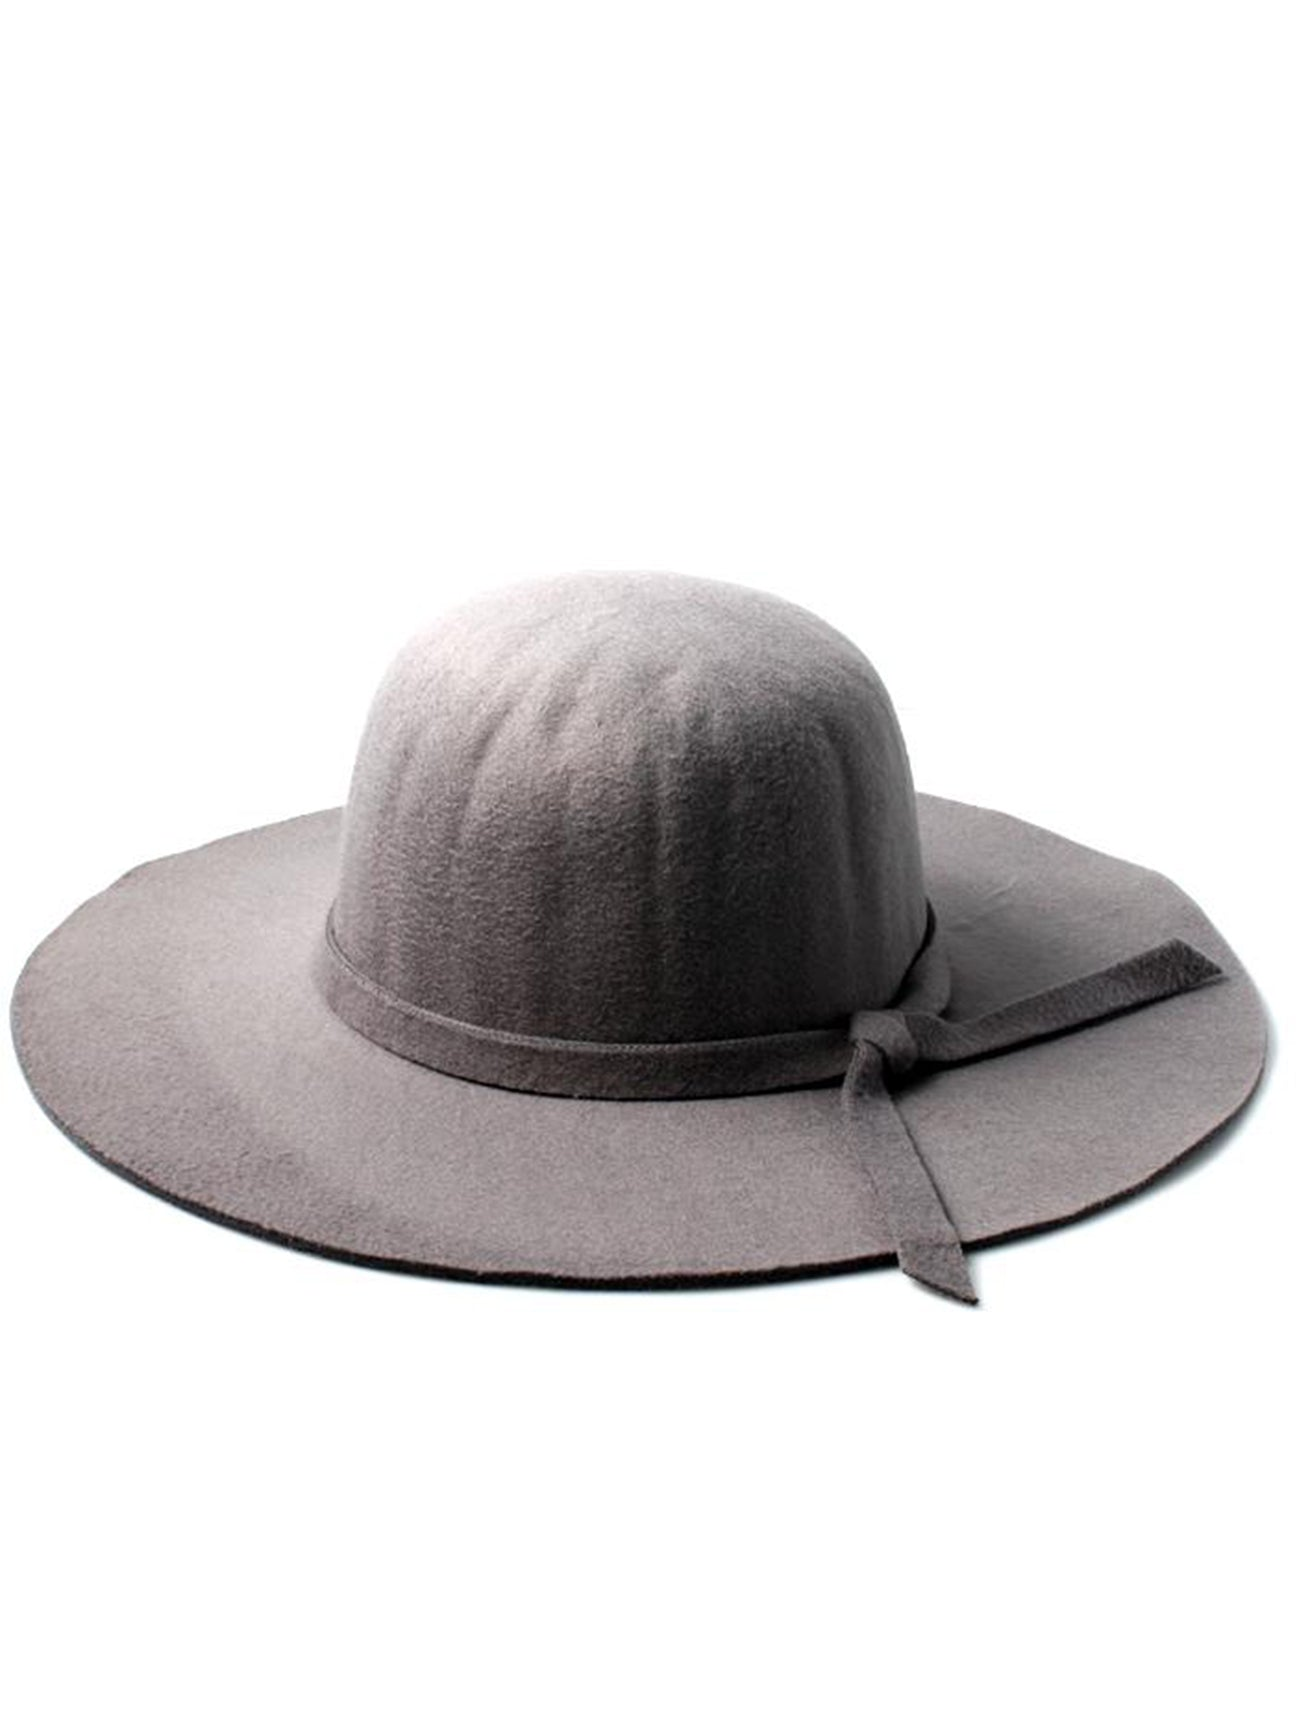 PollyCotton Ladies Grey Floppy Fedora Hat with Knotted Band Detail